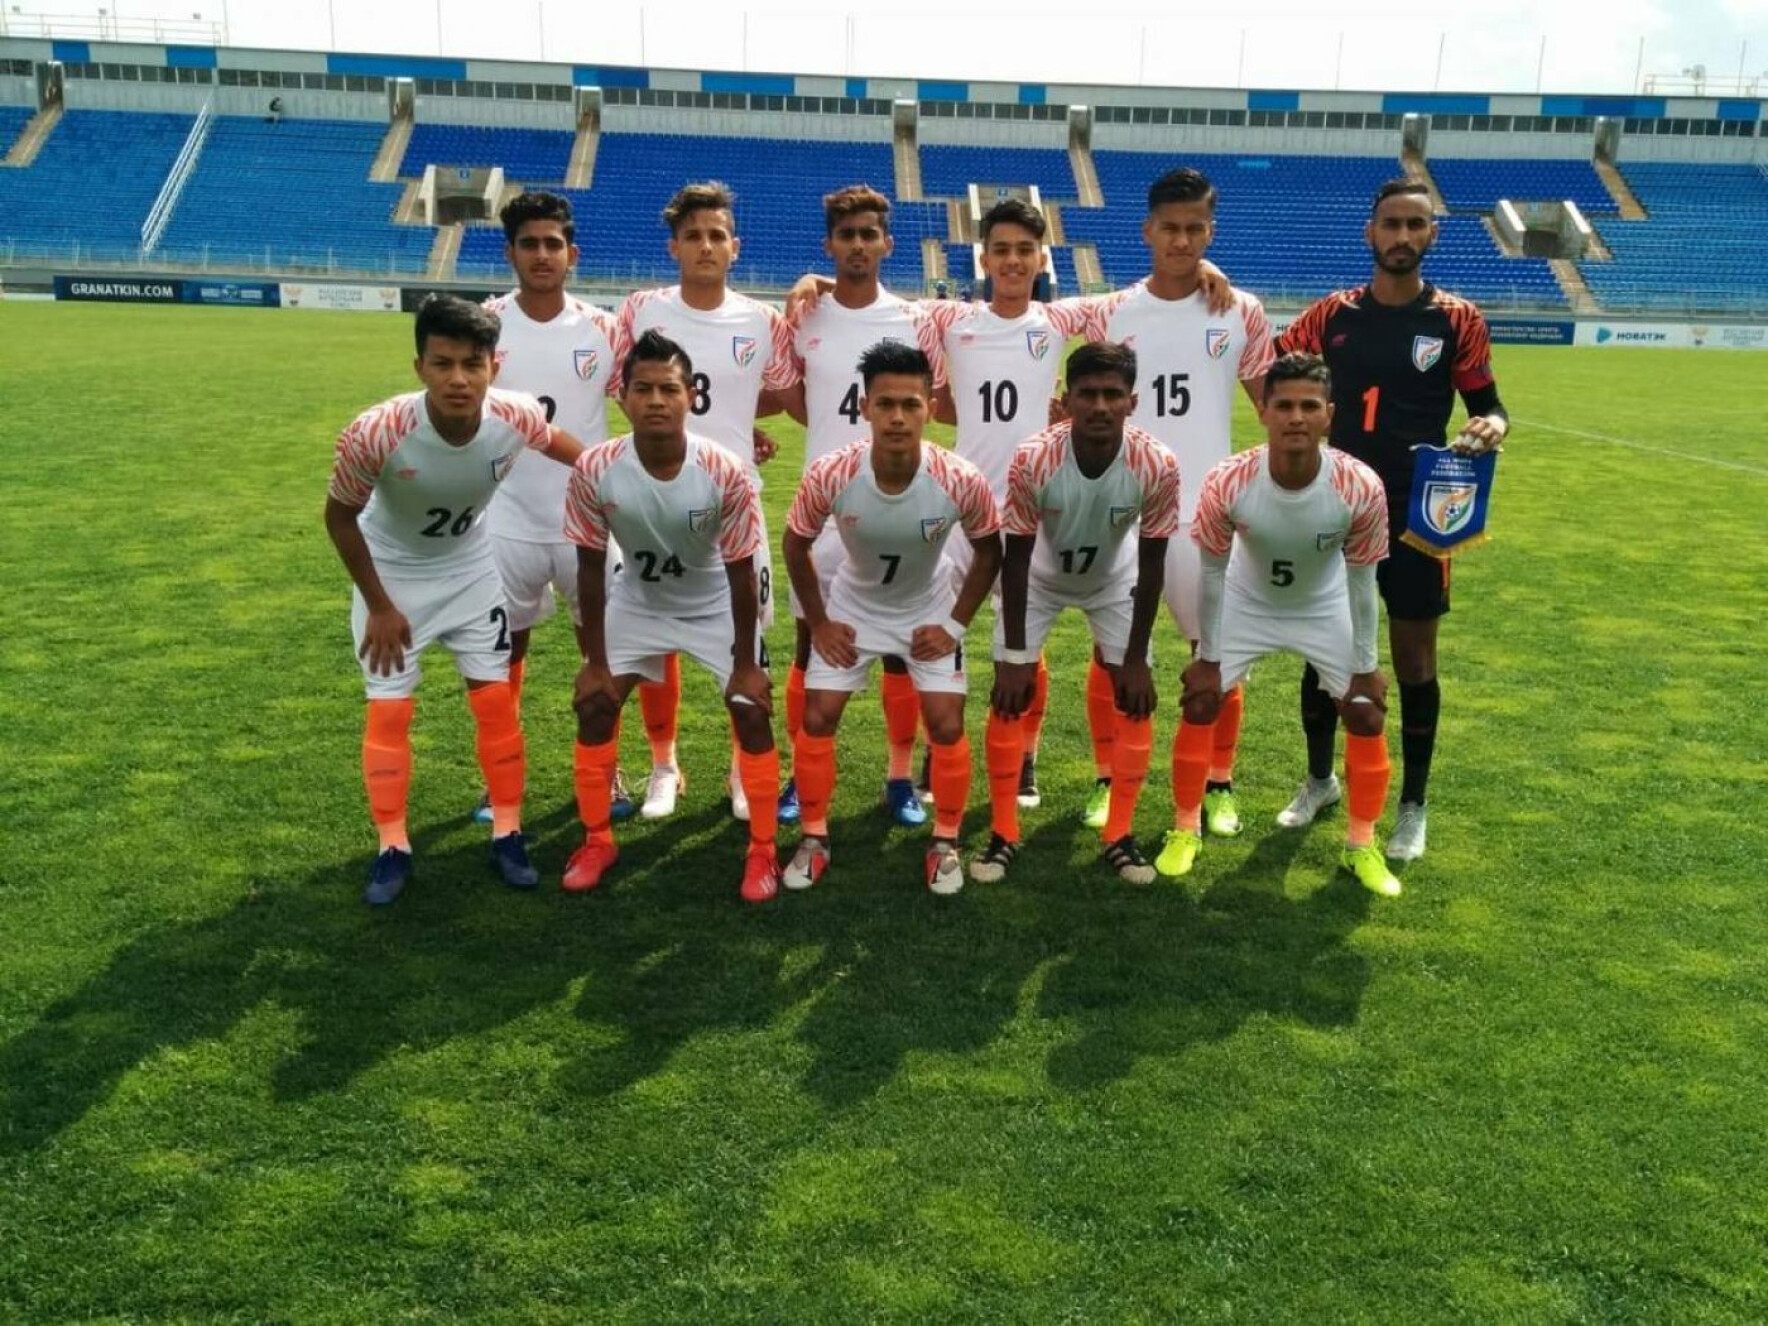 Granatkin Memorial 2019: India hold Bulgaria for a draw